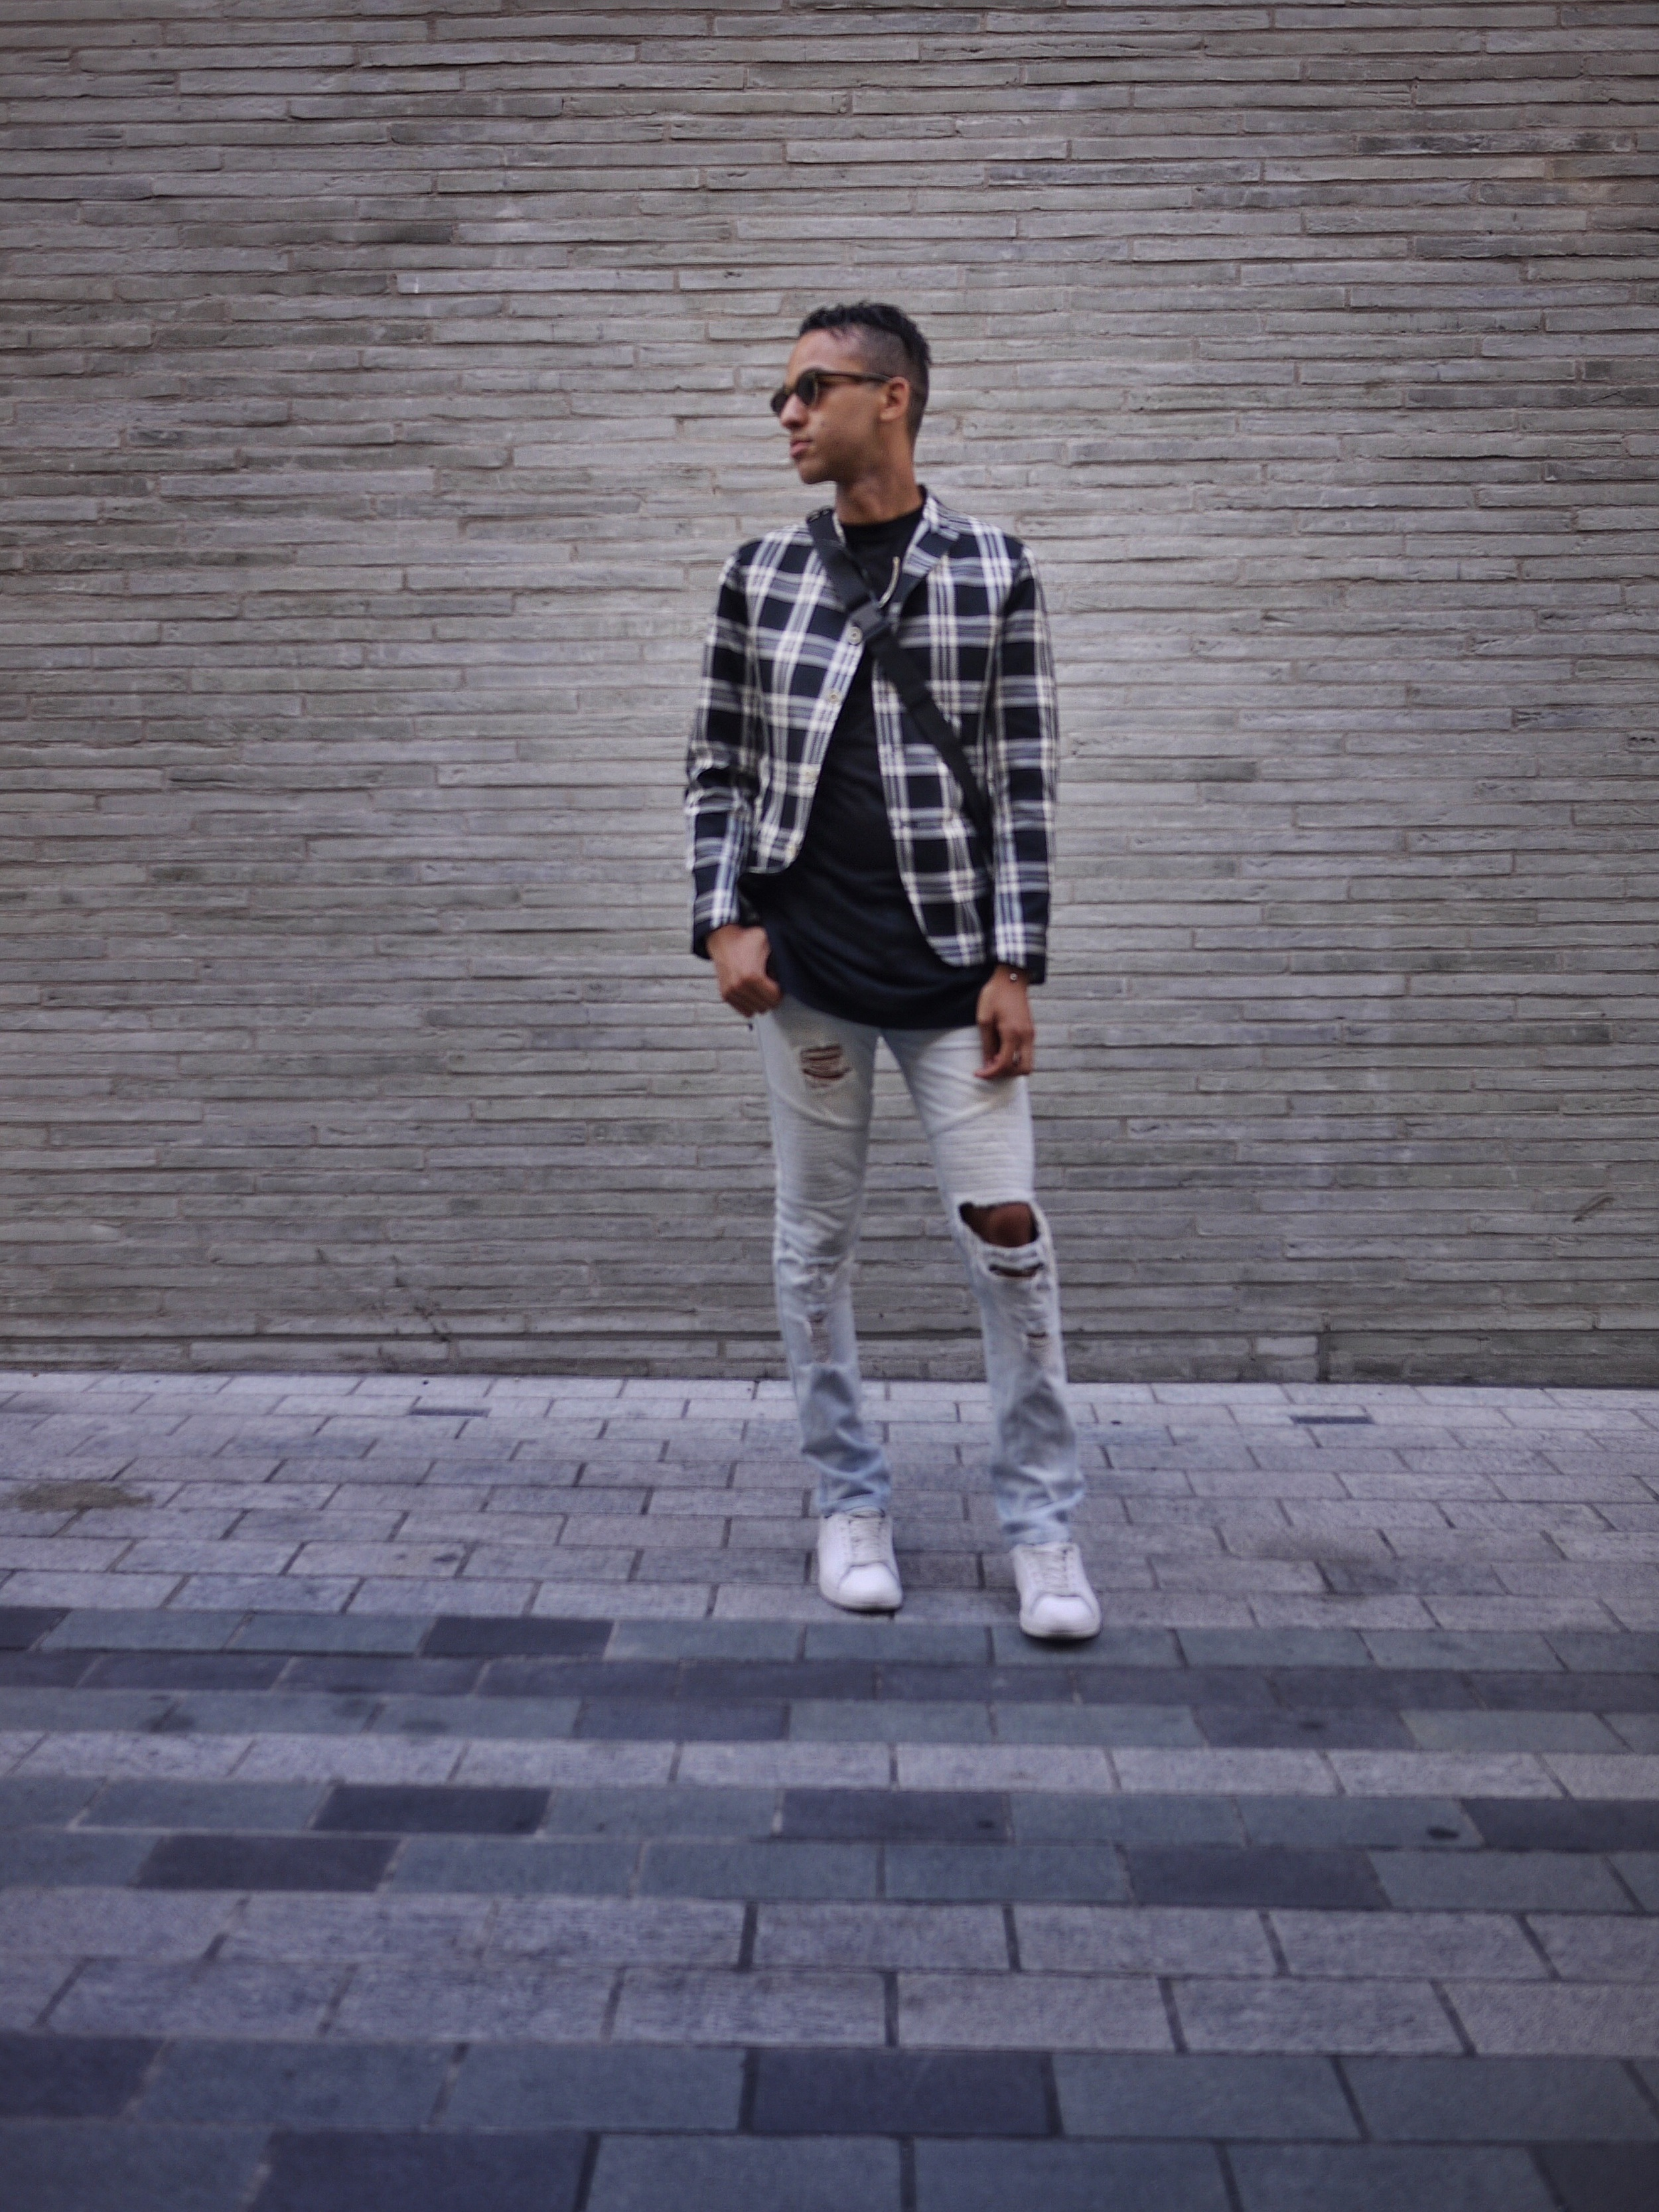 Alexander McQueen Blazer // Elevate tee // Zara bag // Stampd LA denim // Gola shoes // Urban Outfitters sunglasses